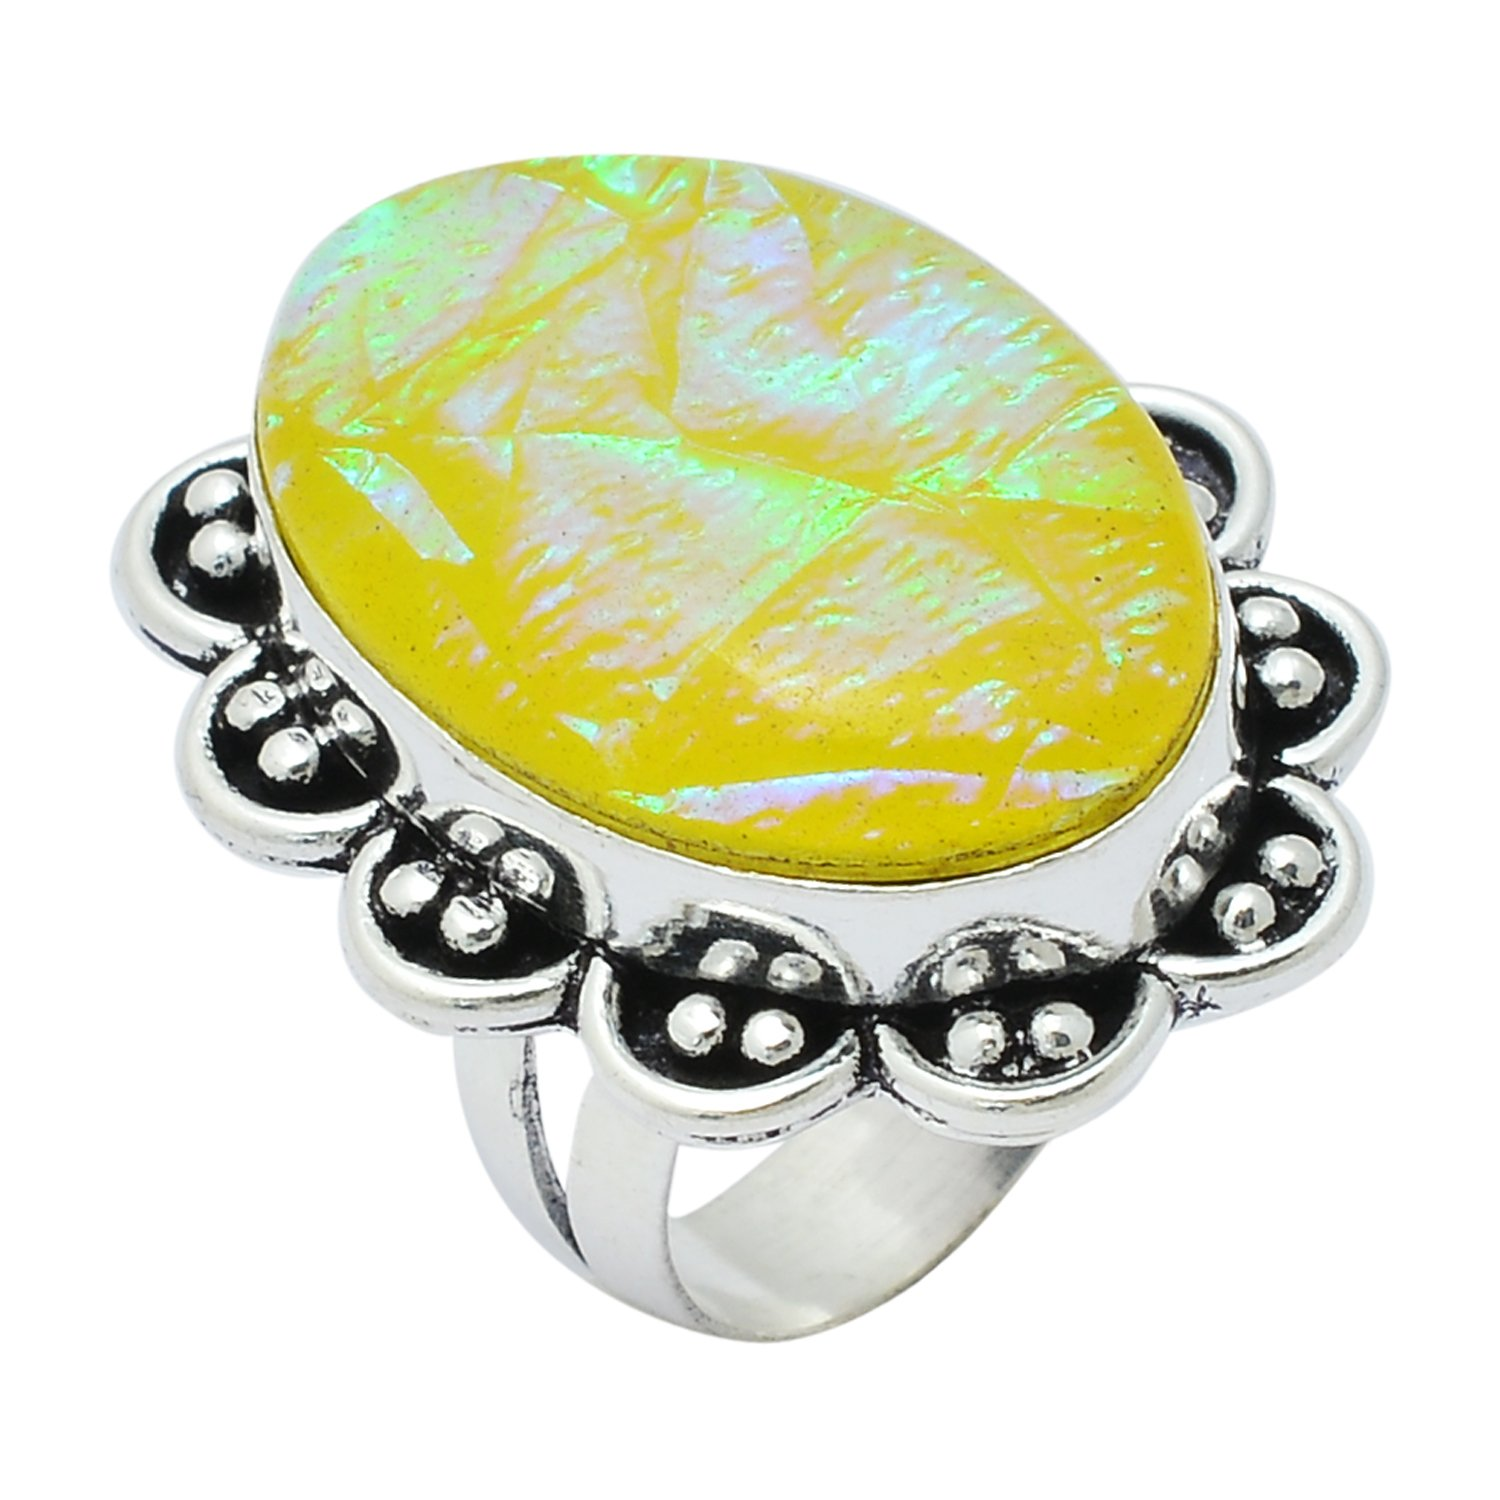 Handmade Oval Shape Dichroic Glass Gemstone Silver Plated Retro Ring Size US-6